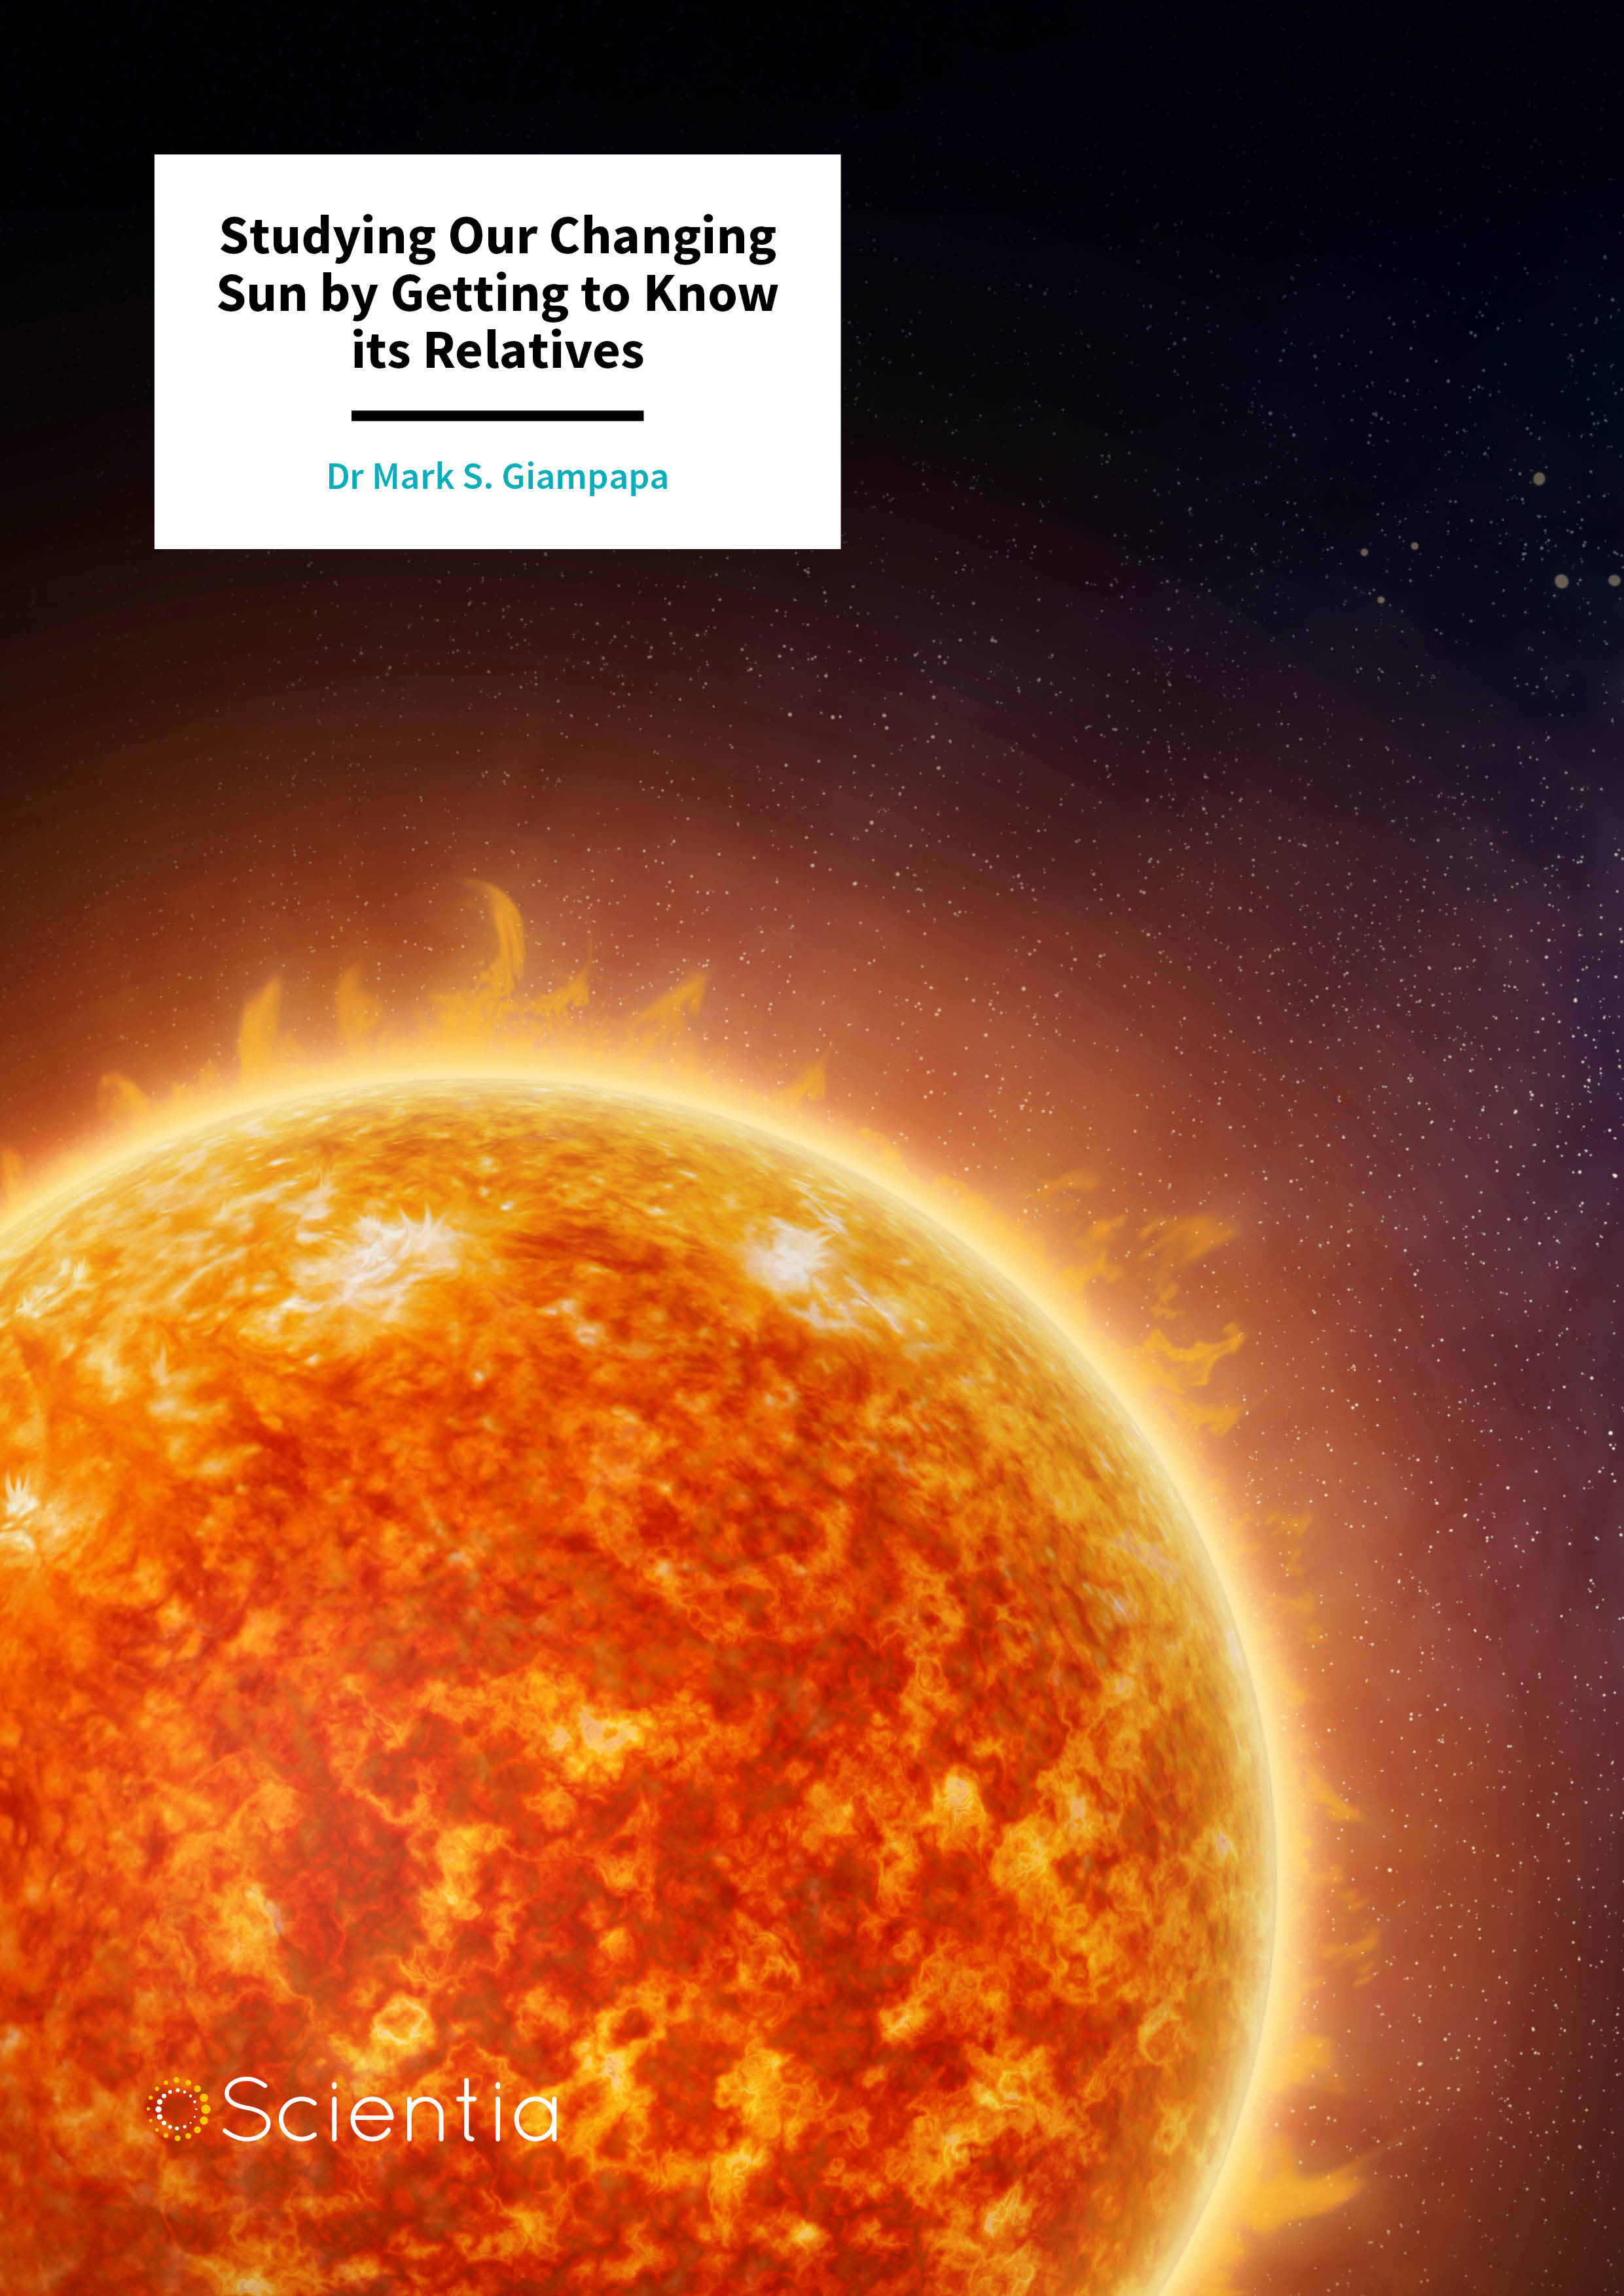 Dr Mark Giampapa – Studying Our Changing Sun by Getting to Know its Relatives